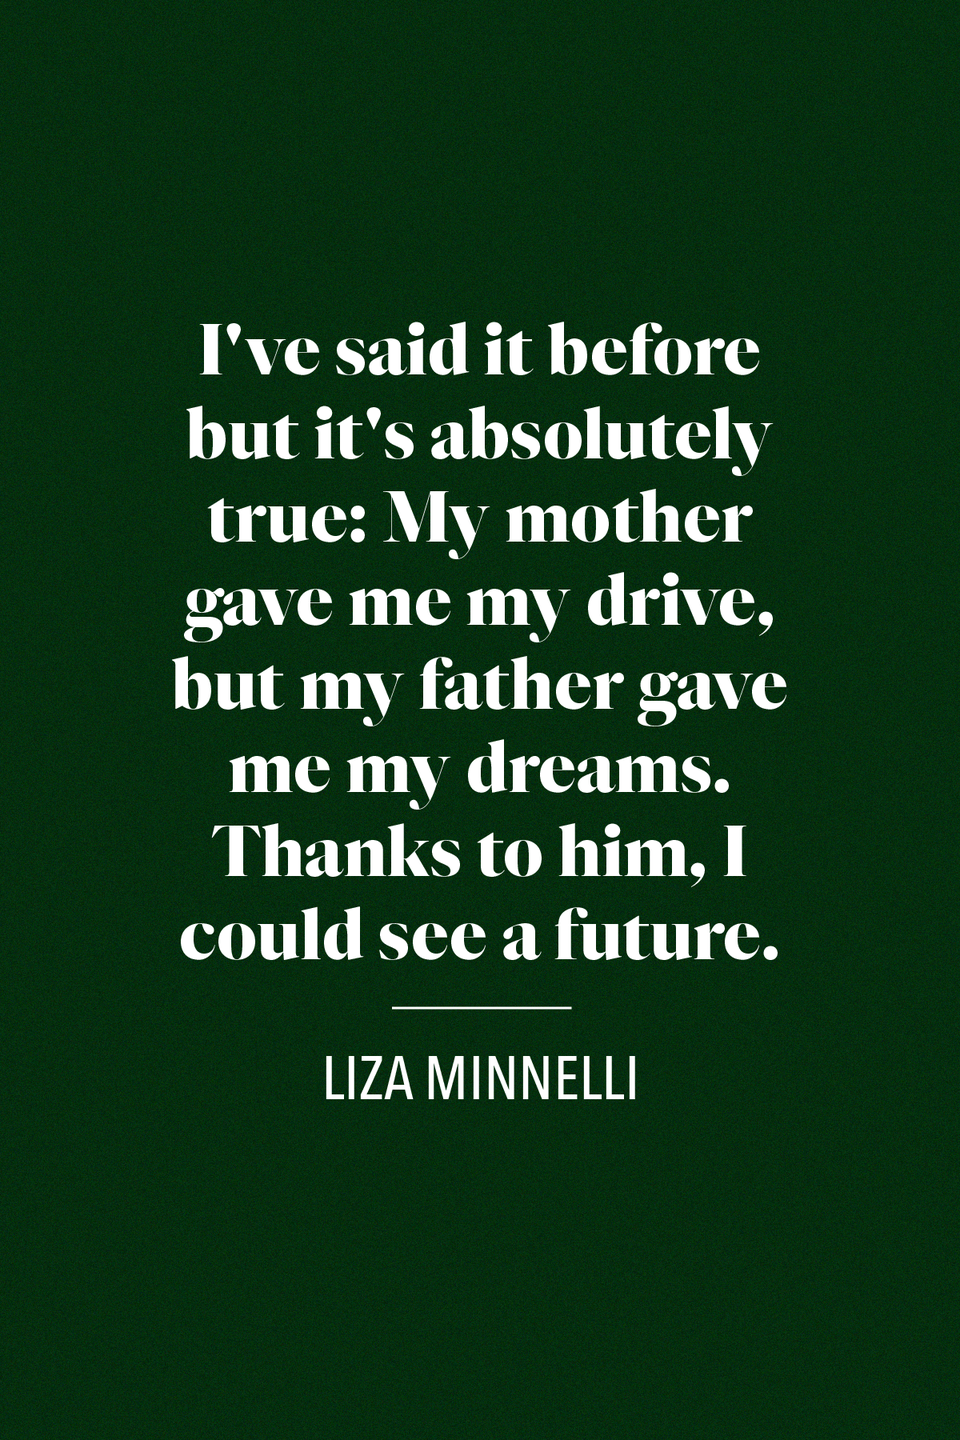 "<p>""I've said it before but it's absolutely true: My mother gave me my drive, but my father gave me my dreams. Thanks to him, I could see a future,"" Academy Award winner Liza Minnelli said in a<a href=""https://www.nytimes.com/1984/03/04/arts/remembering-mama-with-liza-minnelli.html"" rel=""nofollow noopener"" target=""_blank"" data-ylk=""slk:New York Times article"" class=""link rapid-noclick-resp""> <em>New York Times</em> article </a>originally published in 1996, about her father Vincente Minnelli, a famed director.</p>"